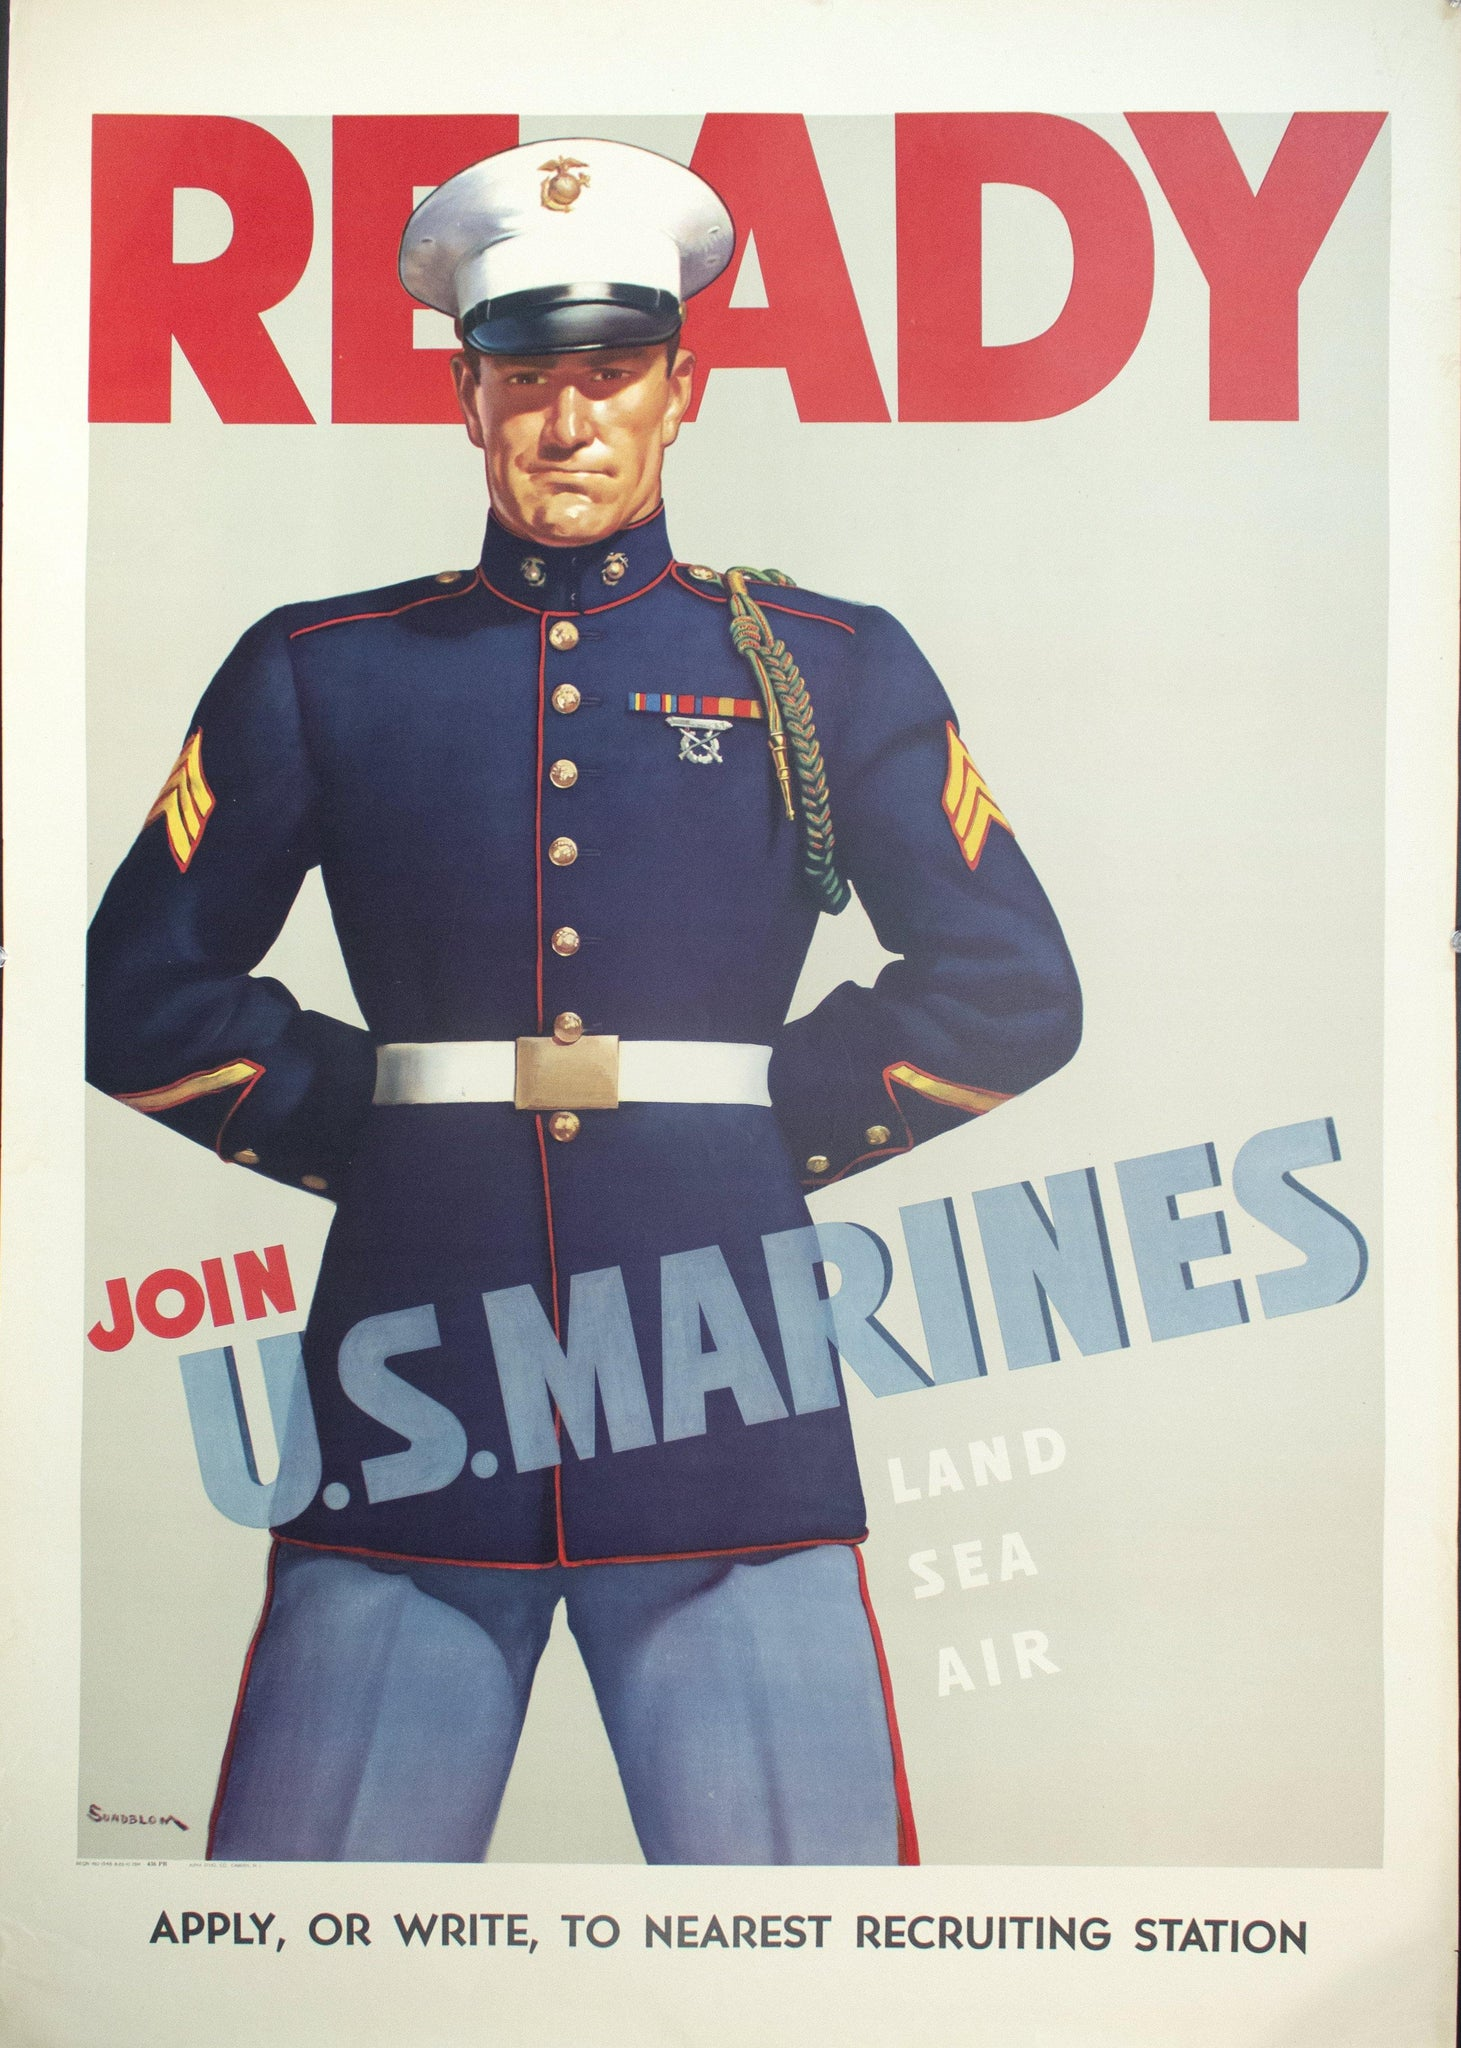 1942 Ready Join US Marines Recruitment by Sundblom